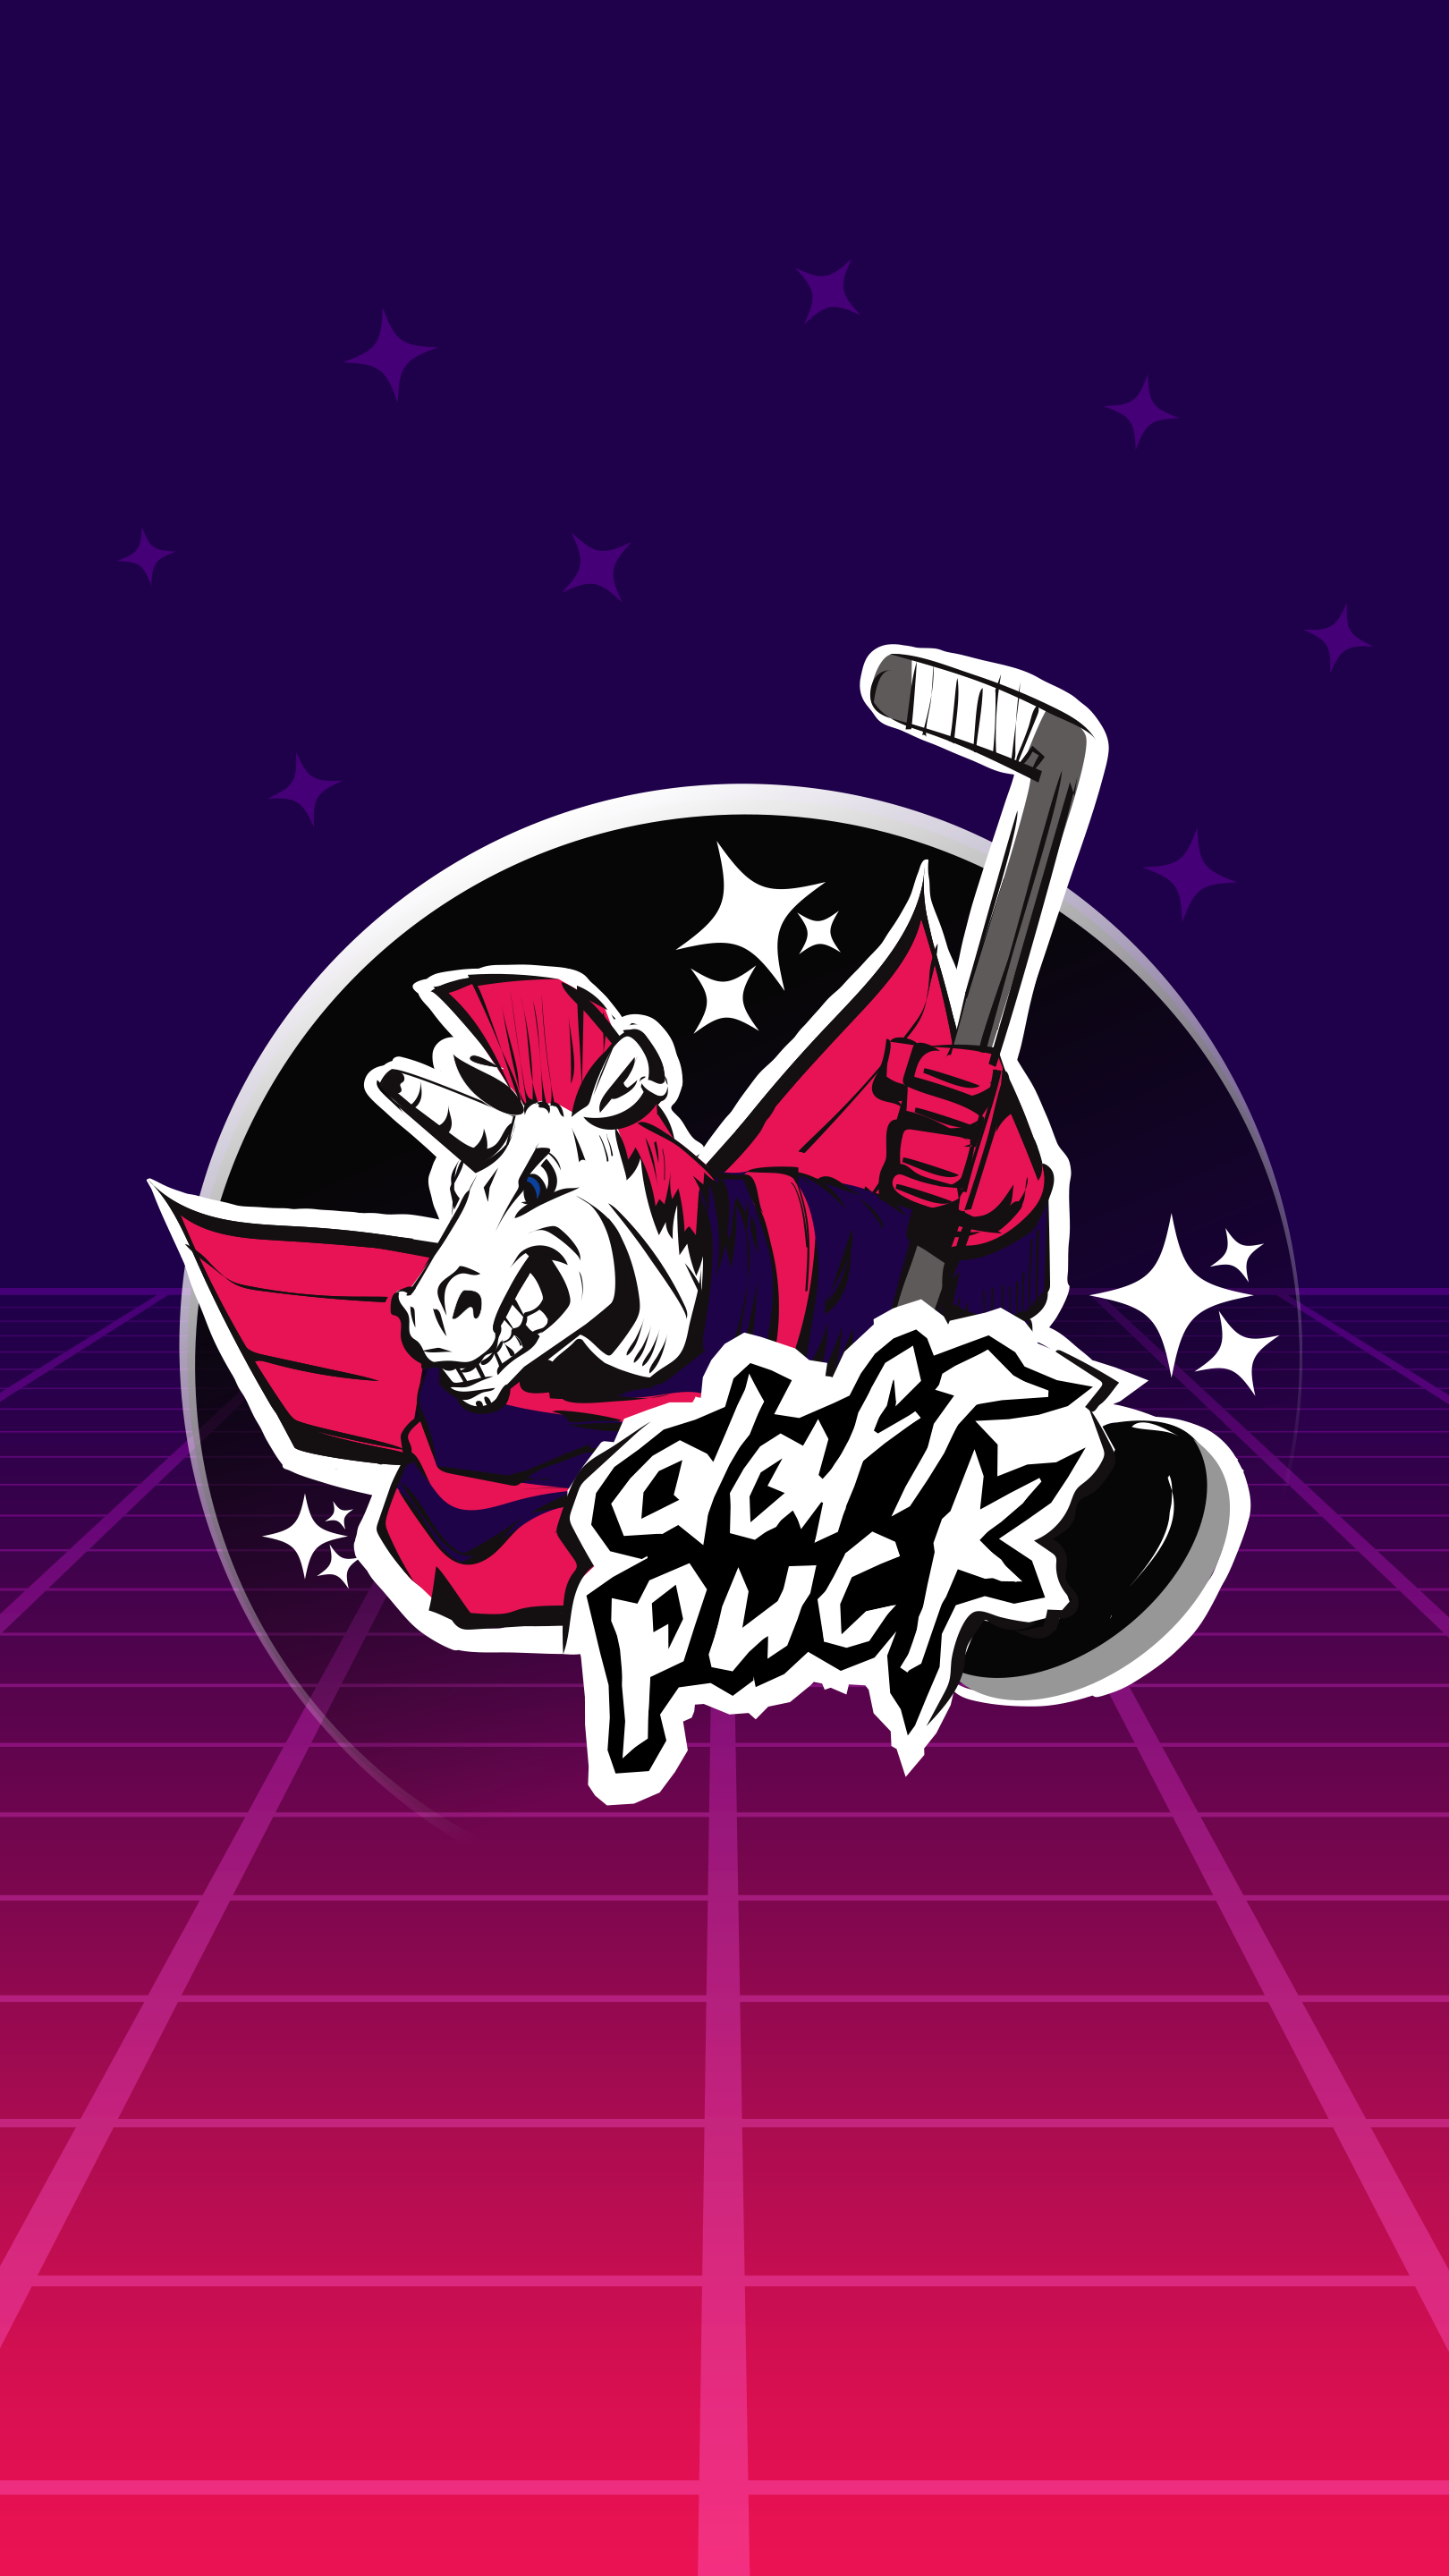 2019 Daft Puck Jersey Mobile Background